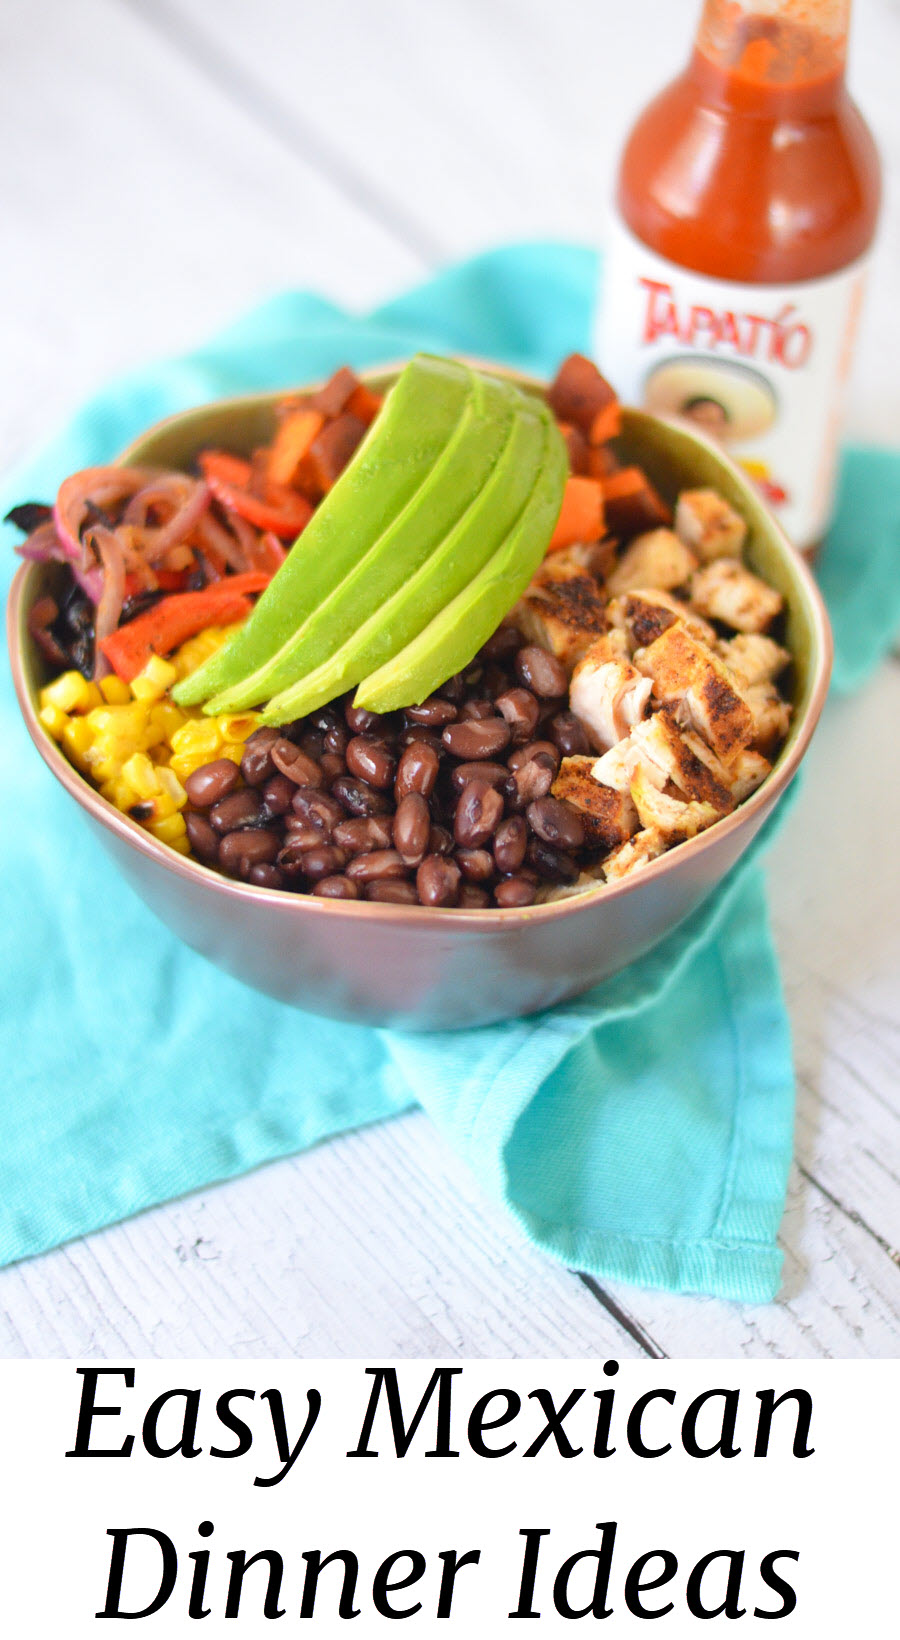 Easy Mexican Dinner Ideas. Cinco de Mayo Mexican-Inspired Balance Bowl Recipe. #mexicanfood #dinnerideas #leftovers #dinner #weeknightdinner #lmrecipes #foodblog #foodblogger